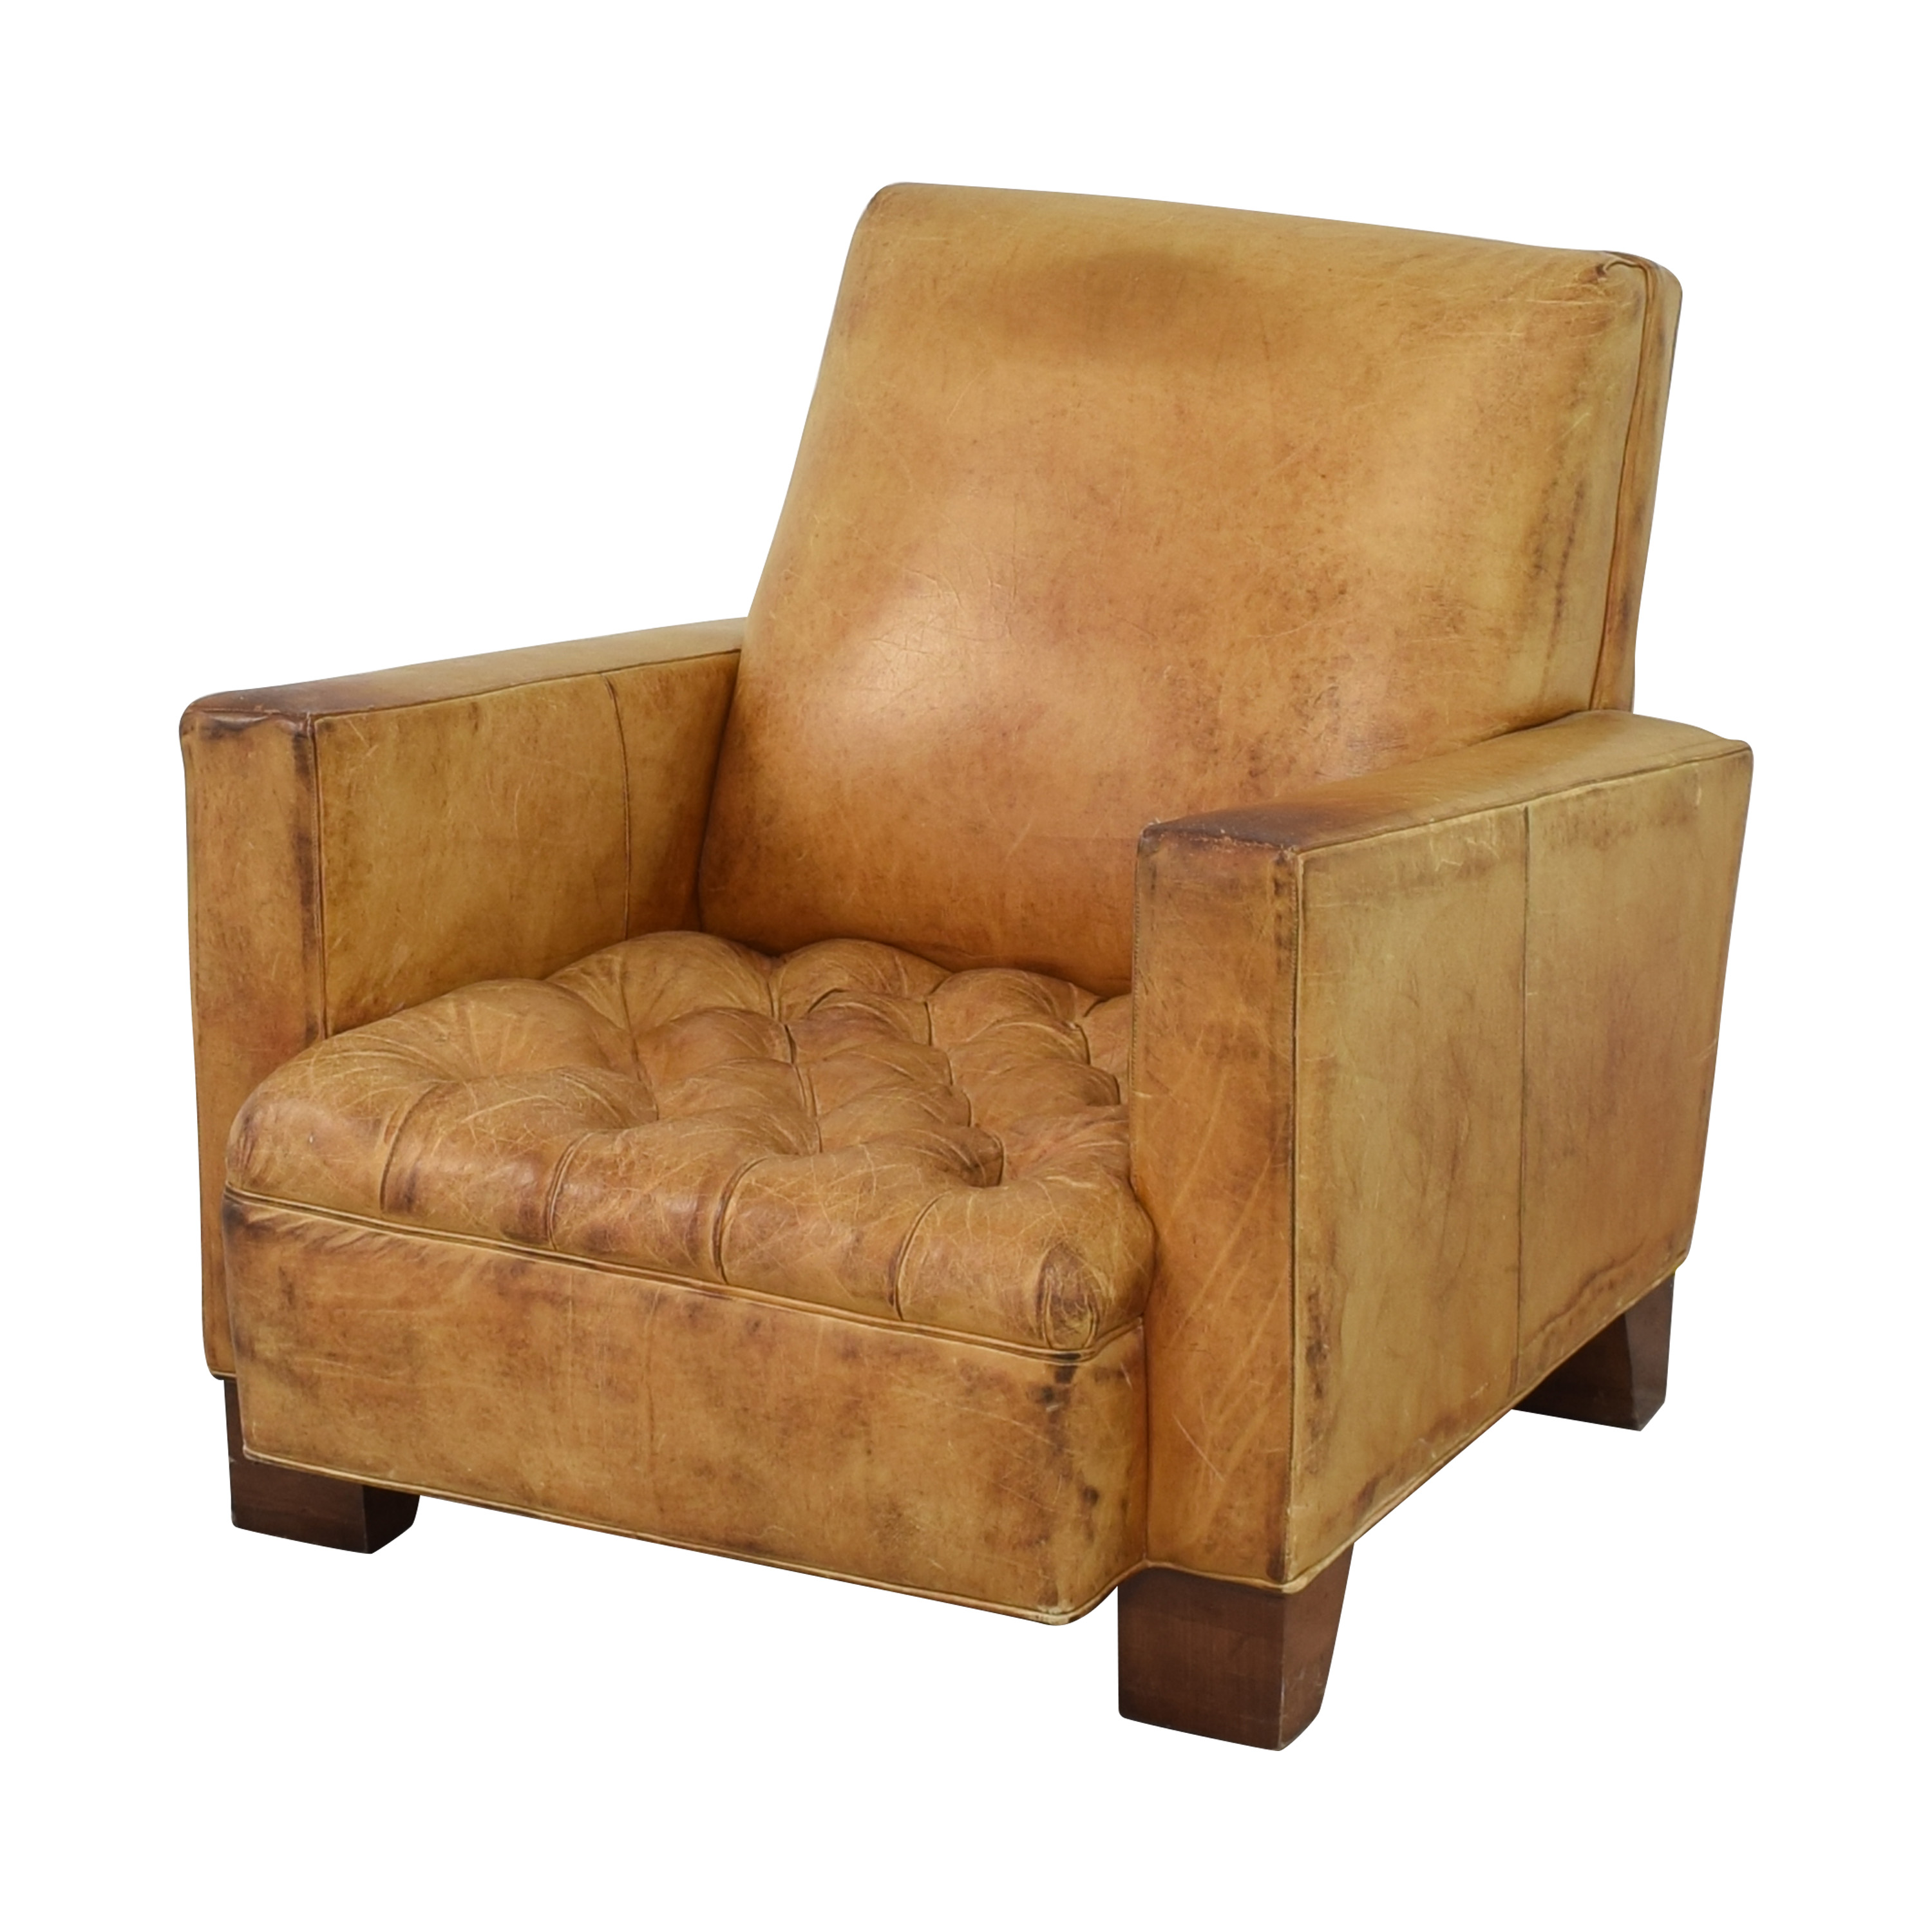 shop ABC Carpet & Home Accent Chair ABC Carpet & Home Accent Chairs